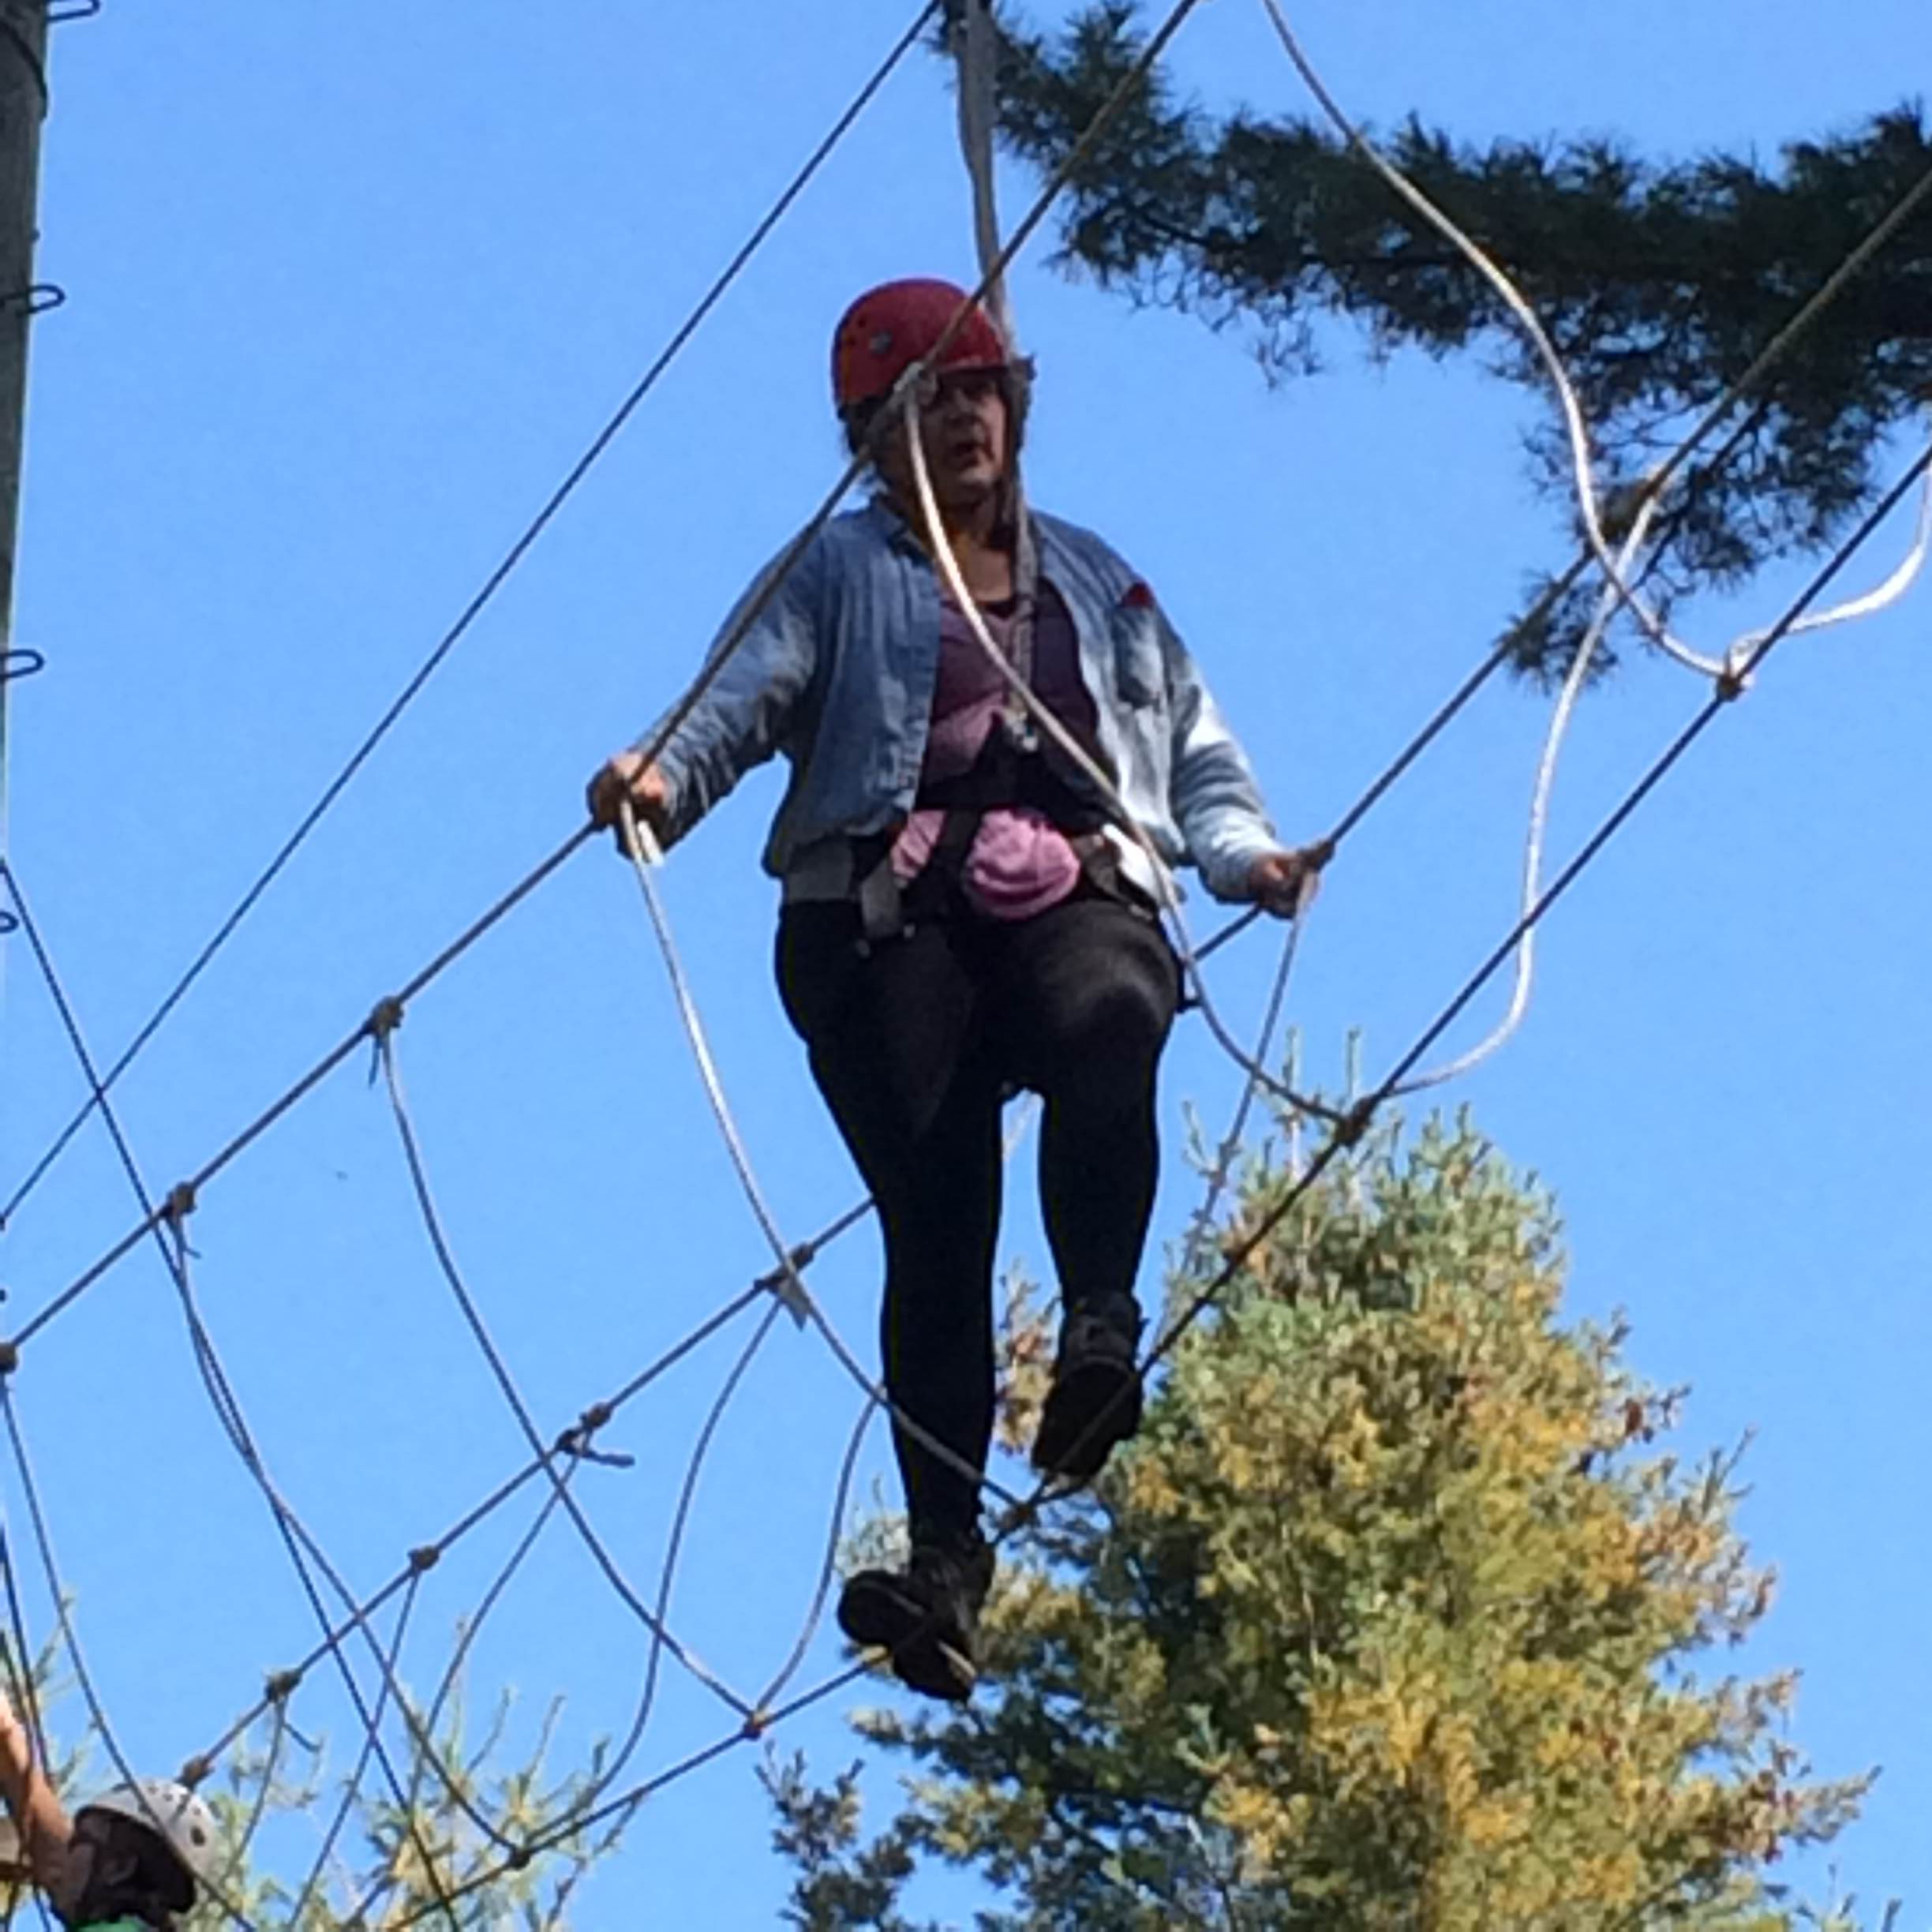 (I was terrified of going up on the ropes, but I was proud of myself that I did it.)